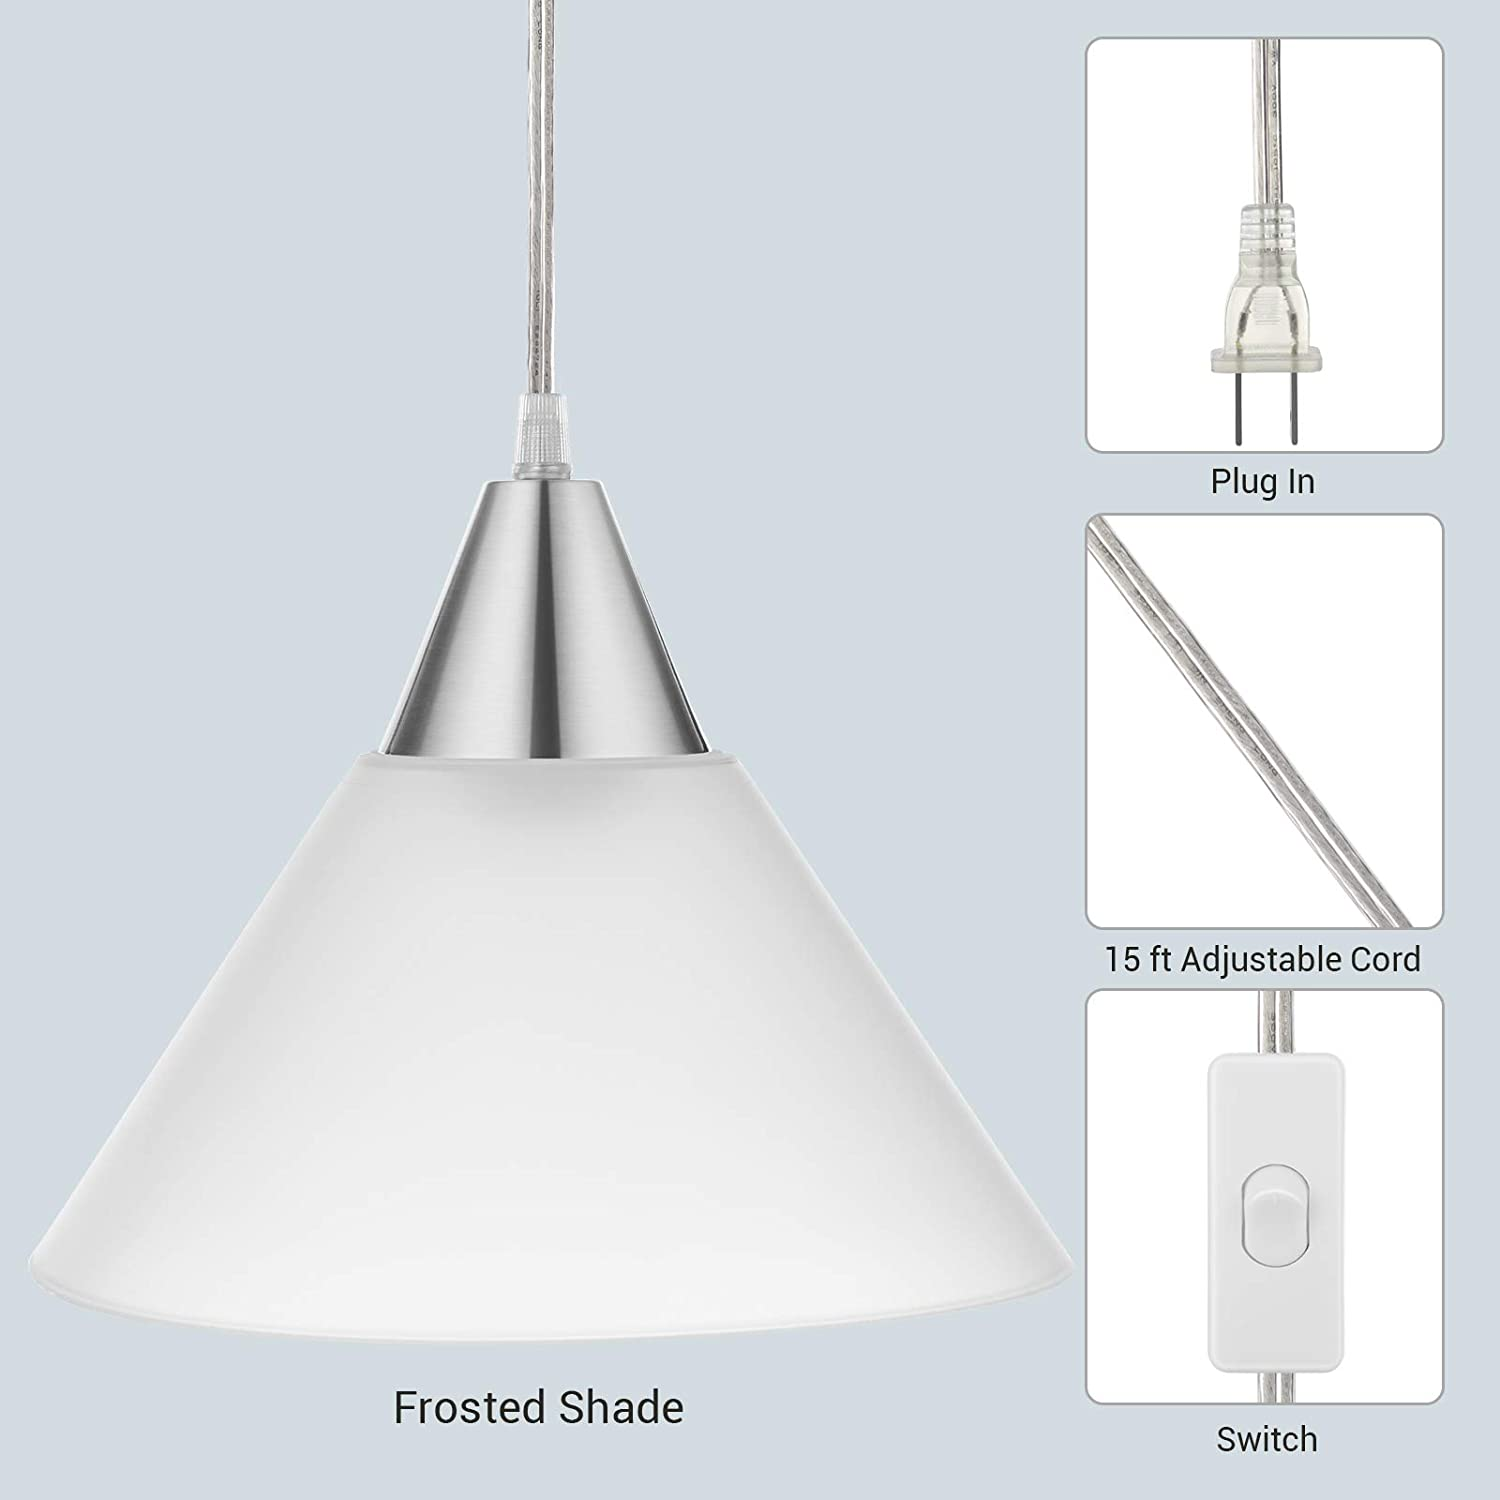 Bedroom Dinning Hall DEWENWILS Plug in Hanging Pendant Light Interior Ceiling Light for Living Room Frosted Plastic White Shade 15FT Clear Cord On//Off Switch,Pack of 2